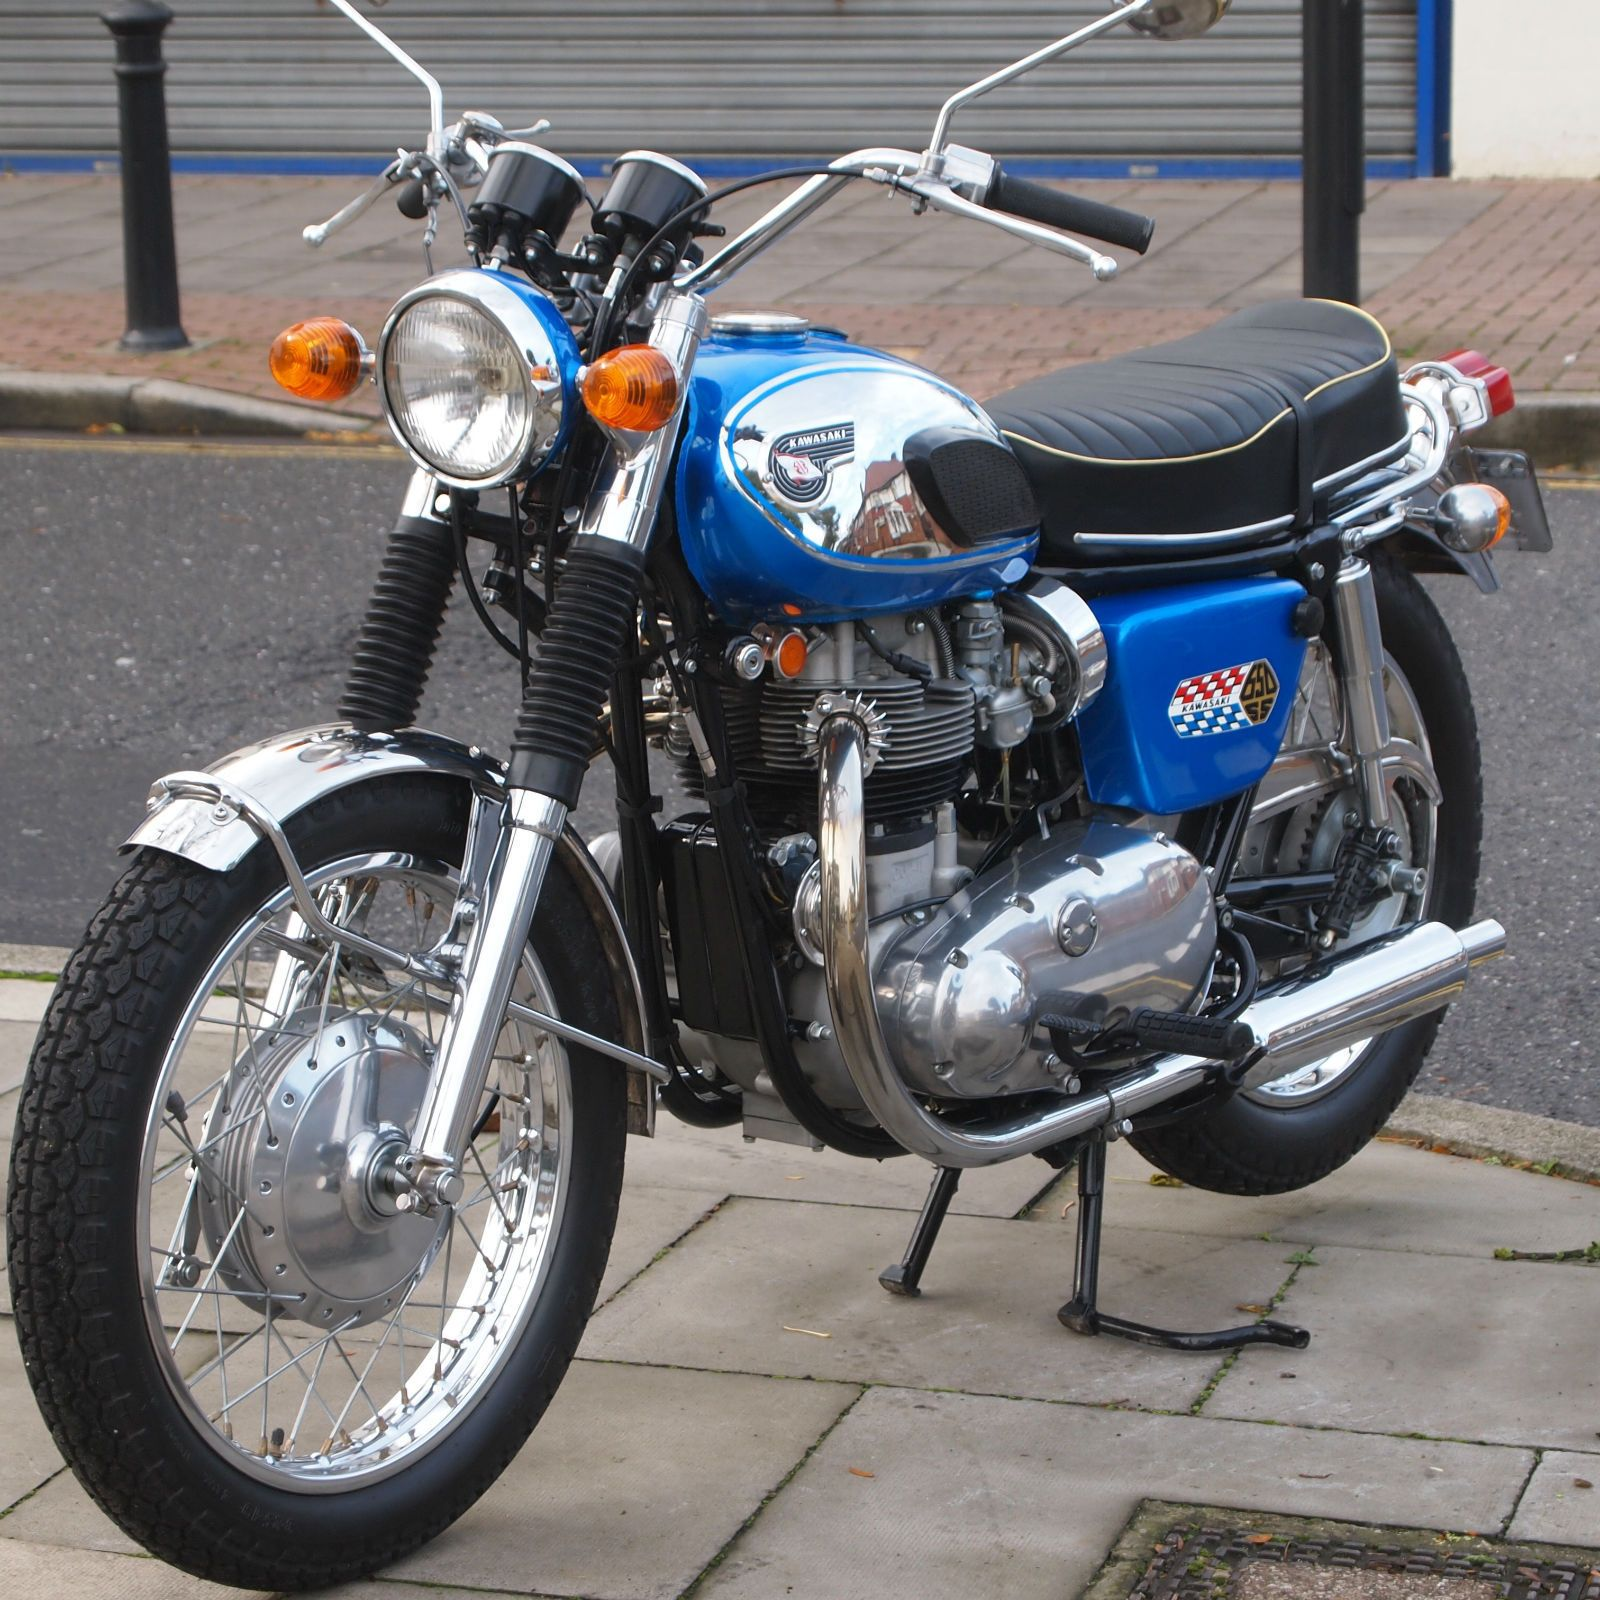 The Kawasaki W1 series this is the 1969 version and was